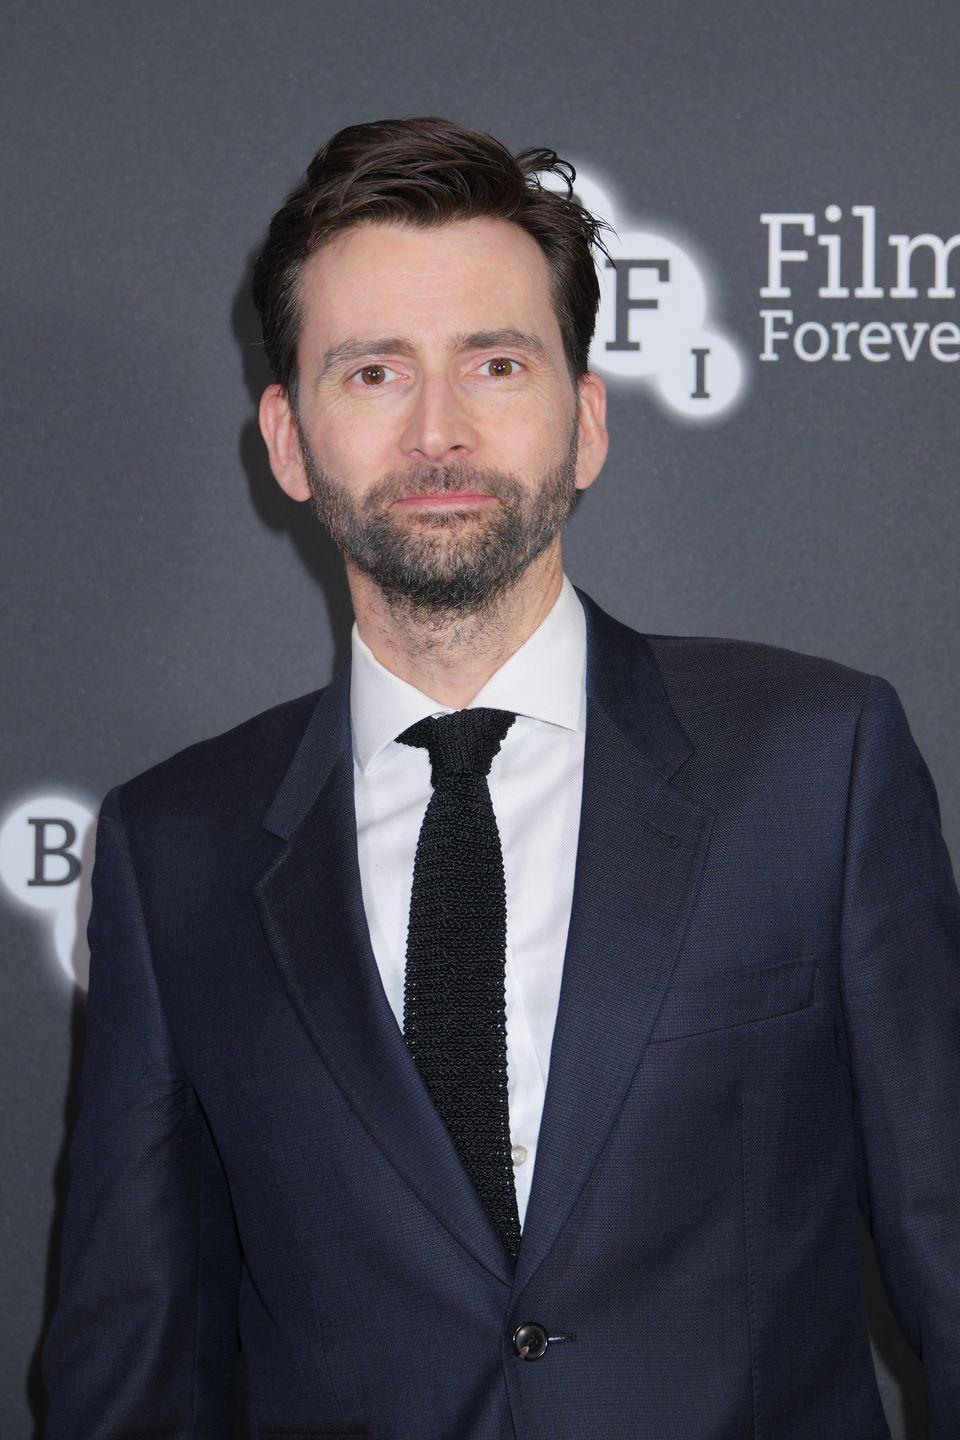 <p><strong>Release date: TBC</strong></p><p>David Tennant will play Alexander Litvinenko, the former Russian Federal Security Services and KGB officer whose death, from polonium poisoning in November 2006, triggered one of the most complex and dangerous investigations in the history of the Metropolitan Police. </p><p>The series will tell the story of how Scotland Yard Officers worked for ten years to prove who was responsible. </p><p>The drama will also focus upon the story of Marina, played by Margarita Levieva (The Deuce, The Blacklist), Alexander's fearless, dignified widow.</p>